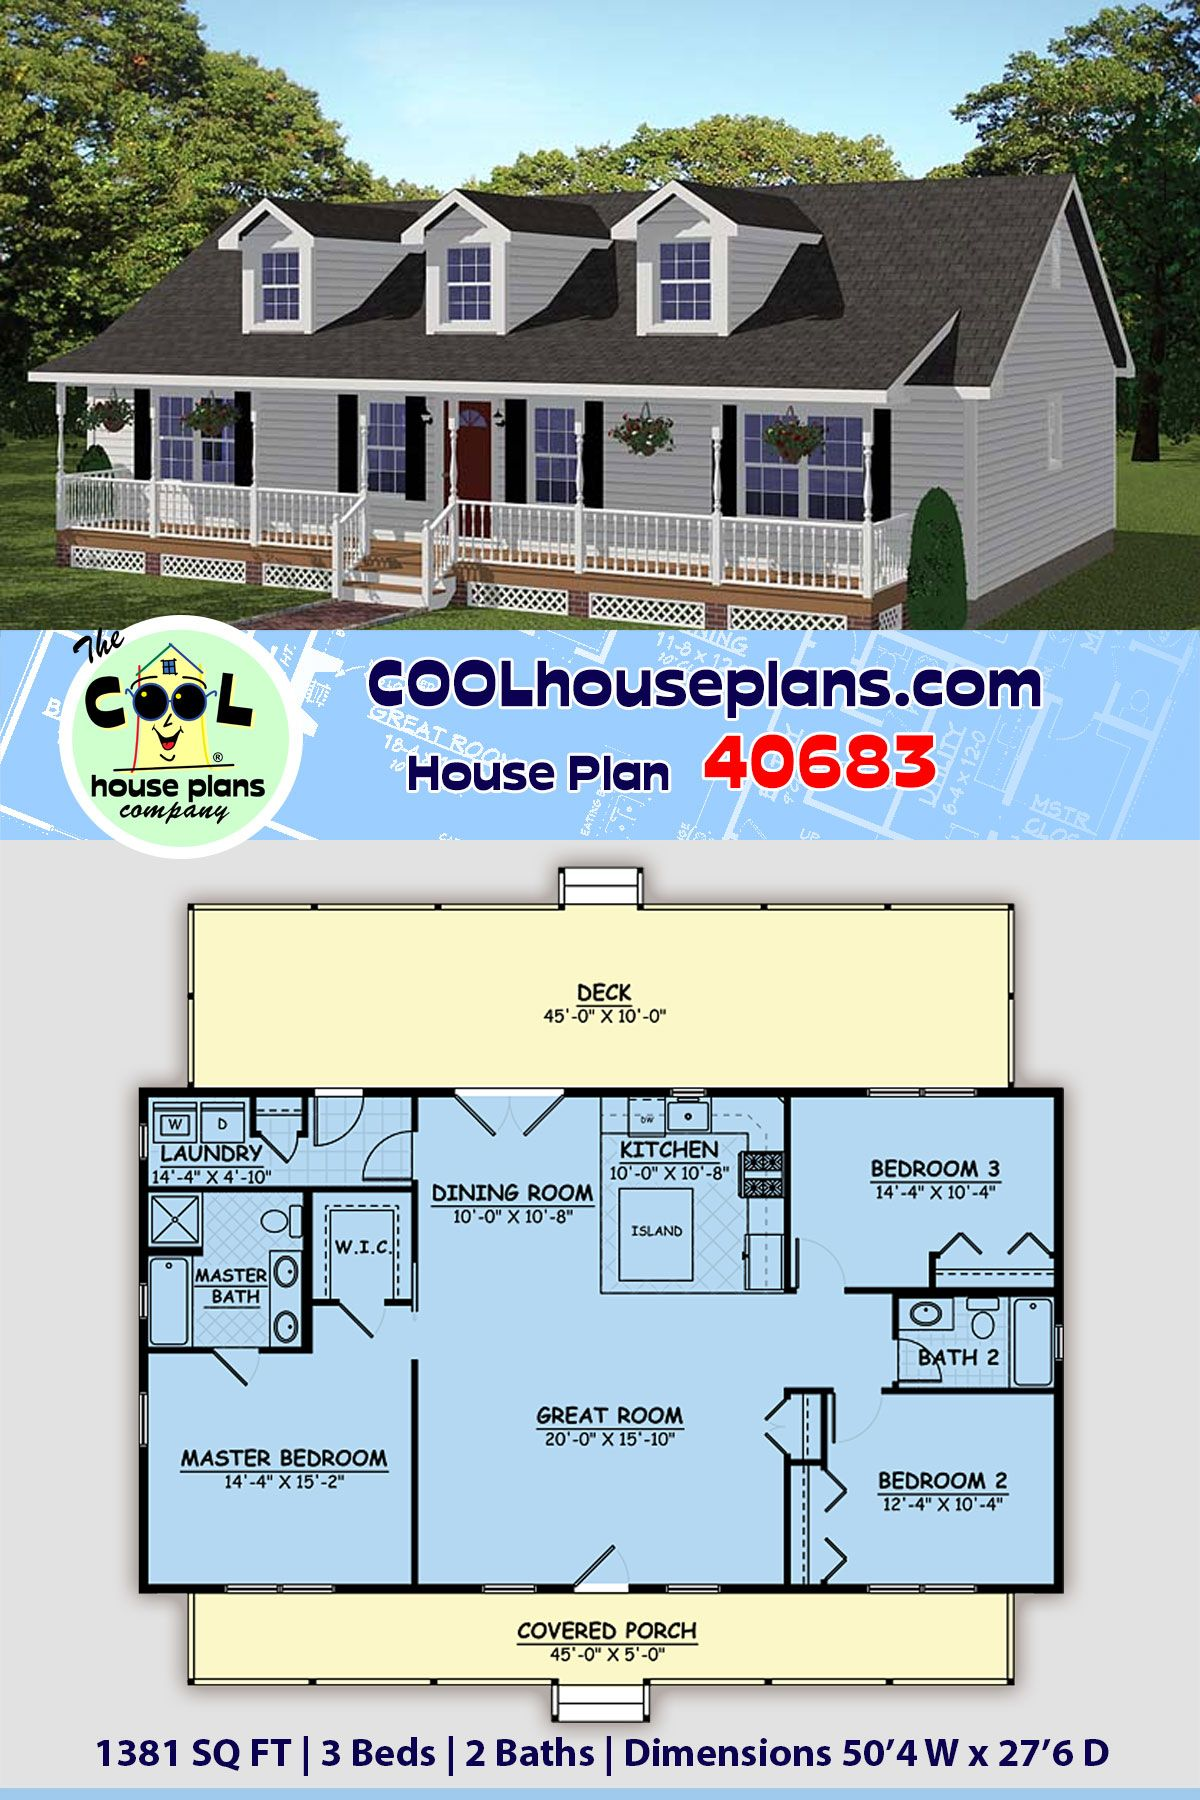 Southern Style House Plan 40683 With 3 Bed 2 Bath Ranch House Plans House Plans Small Floor Plans